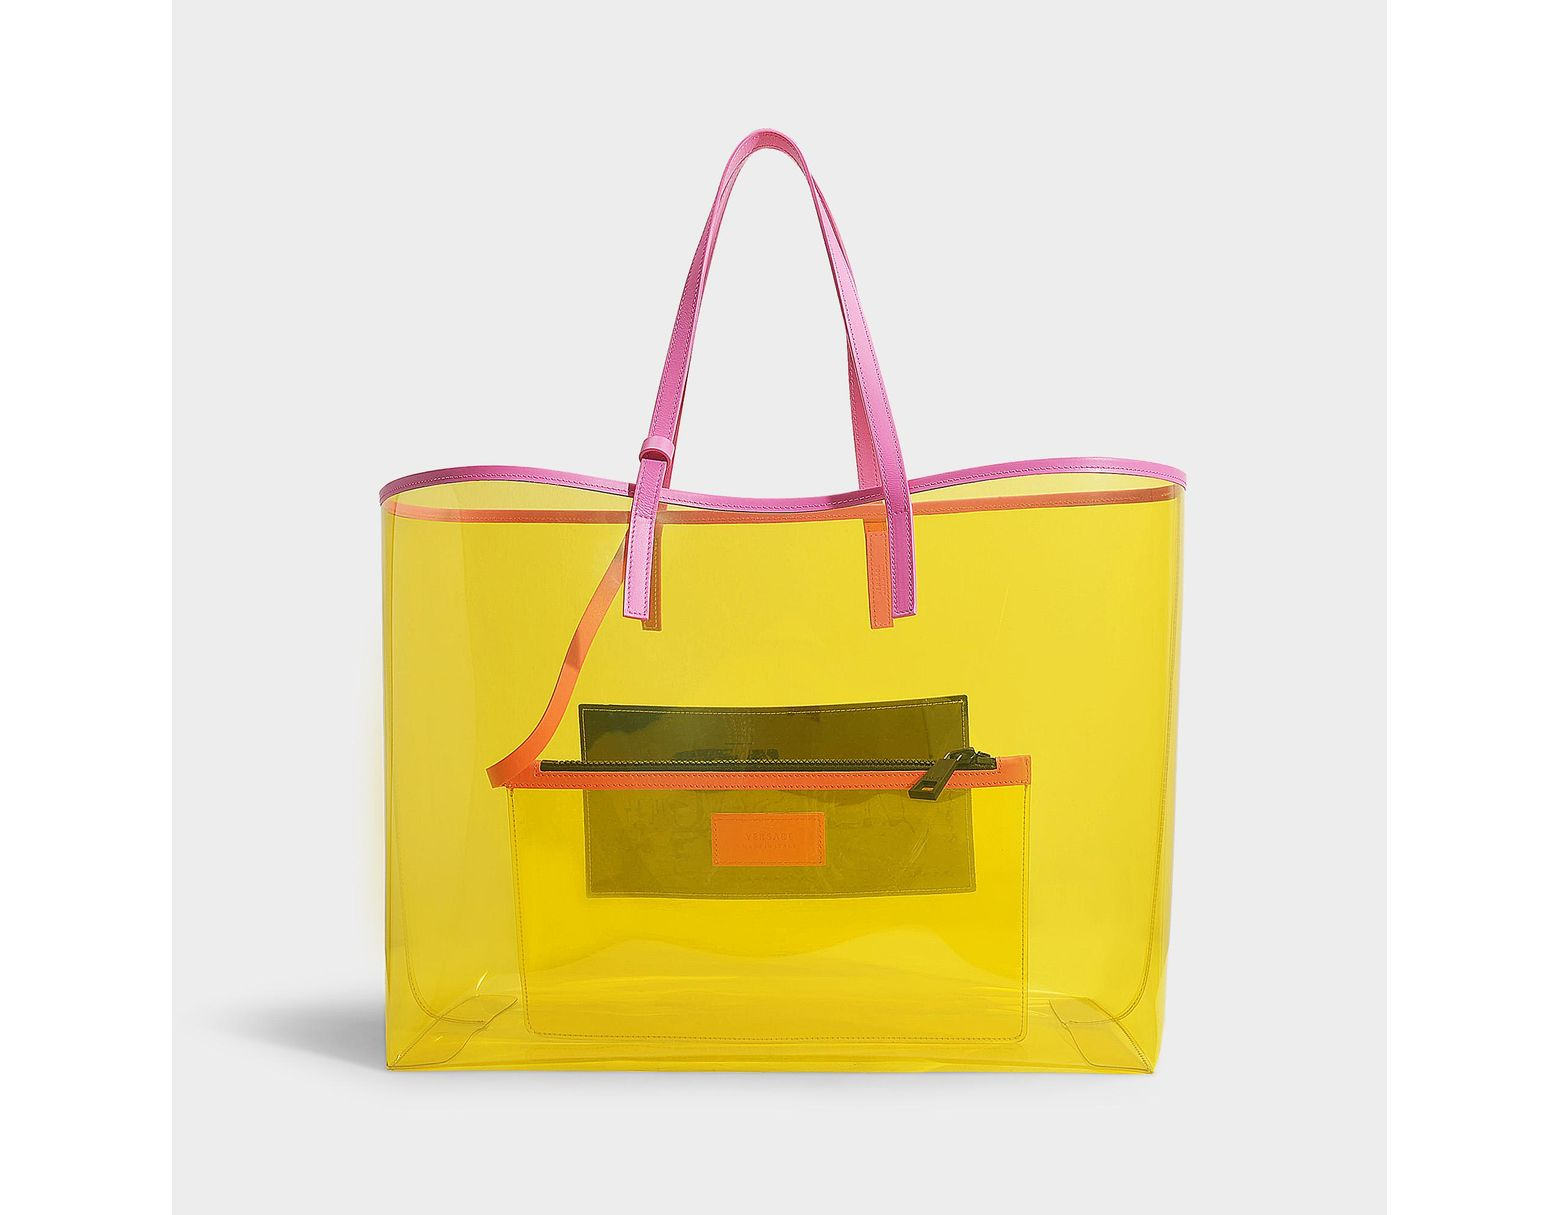 8426fca137 Versace 90's Vintage Logo Soft Tote In Yellow Clear Vinyl in Yellow - Save  52% - Lyst